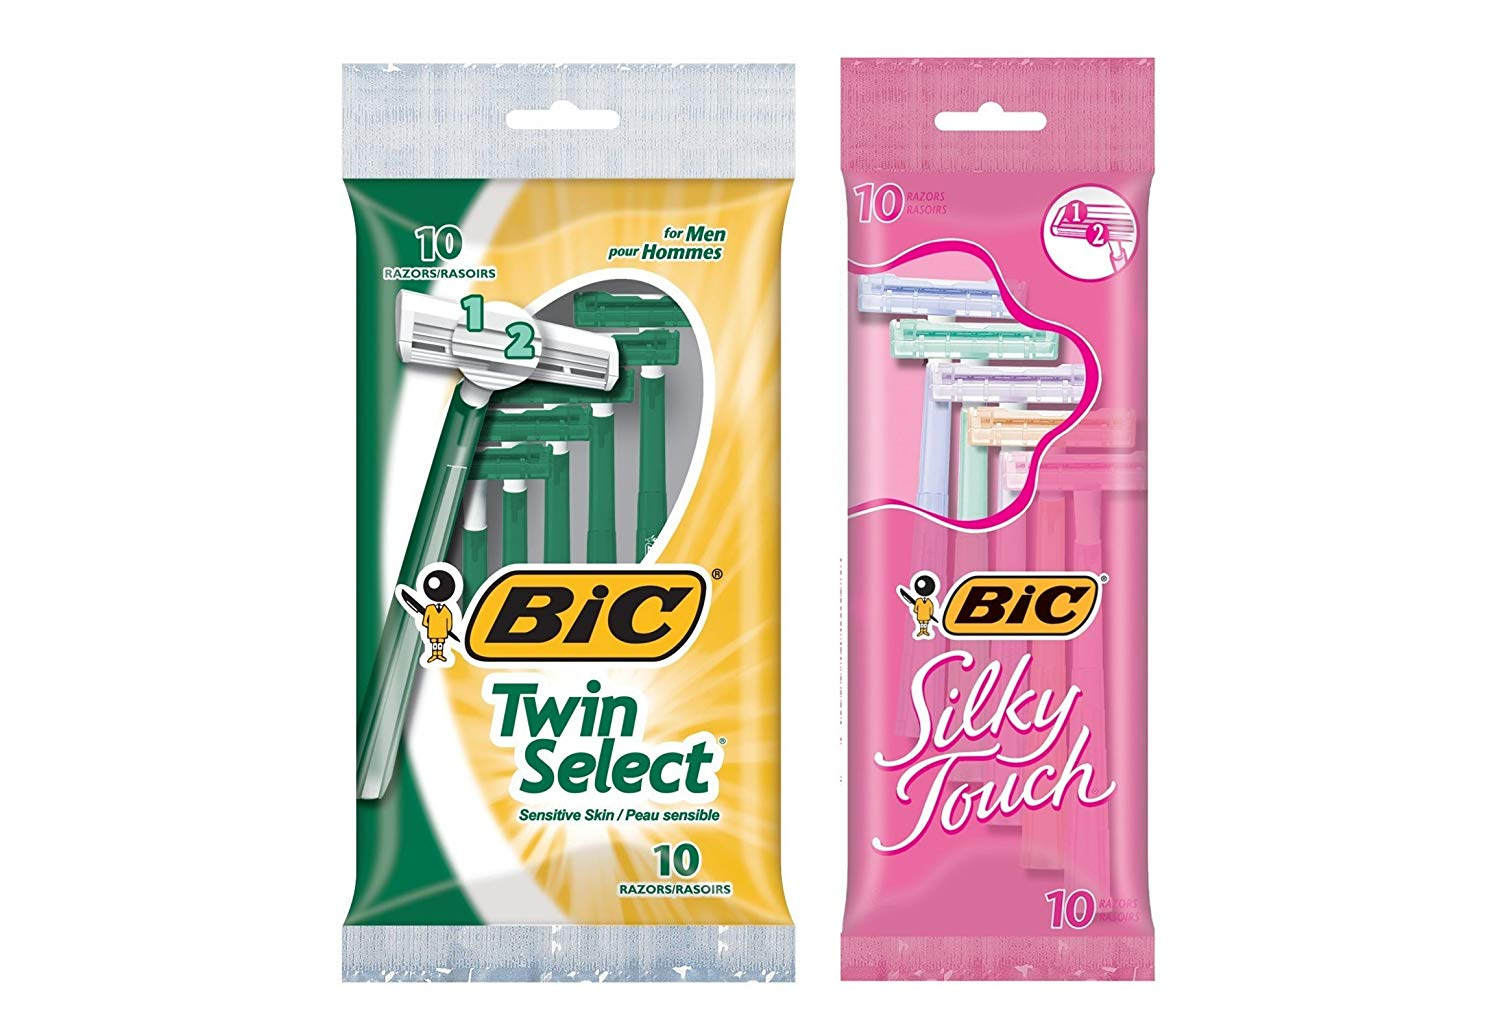 BIC Twin Select Sensitive Skin Disposable Razors for Men, 10CT (STOP101) Bundle with Silky Touch Disposable Razors for Women, 10CT (STWP101)